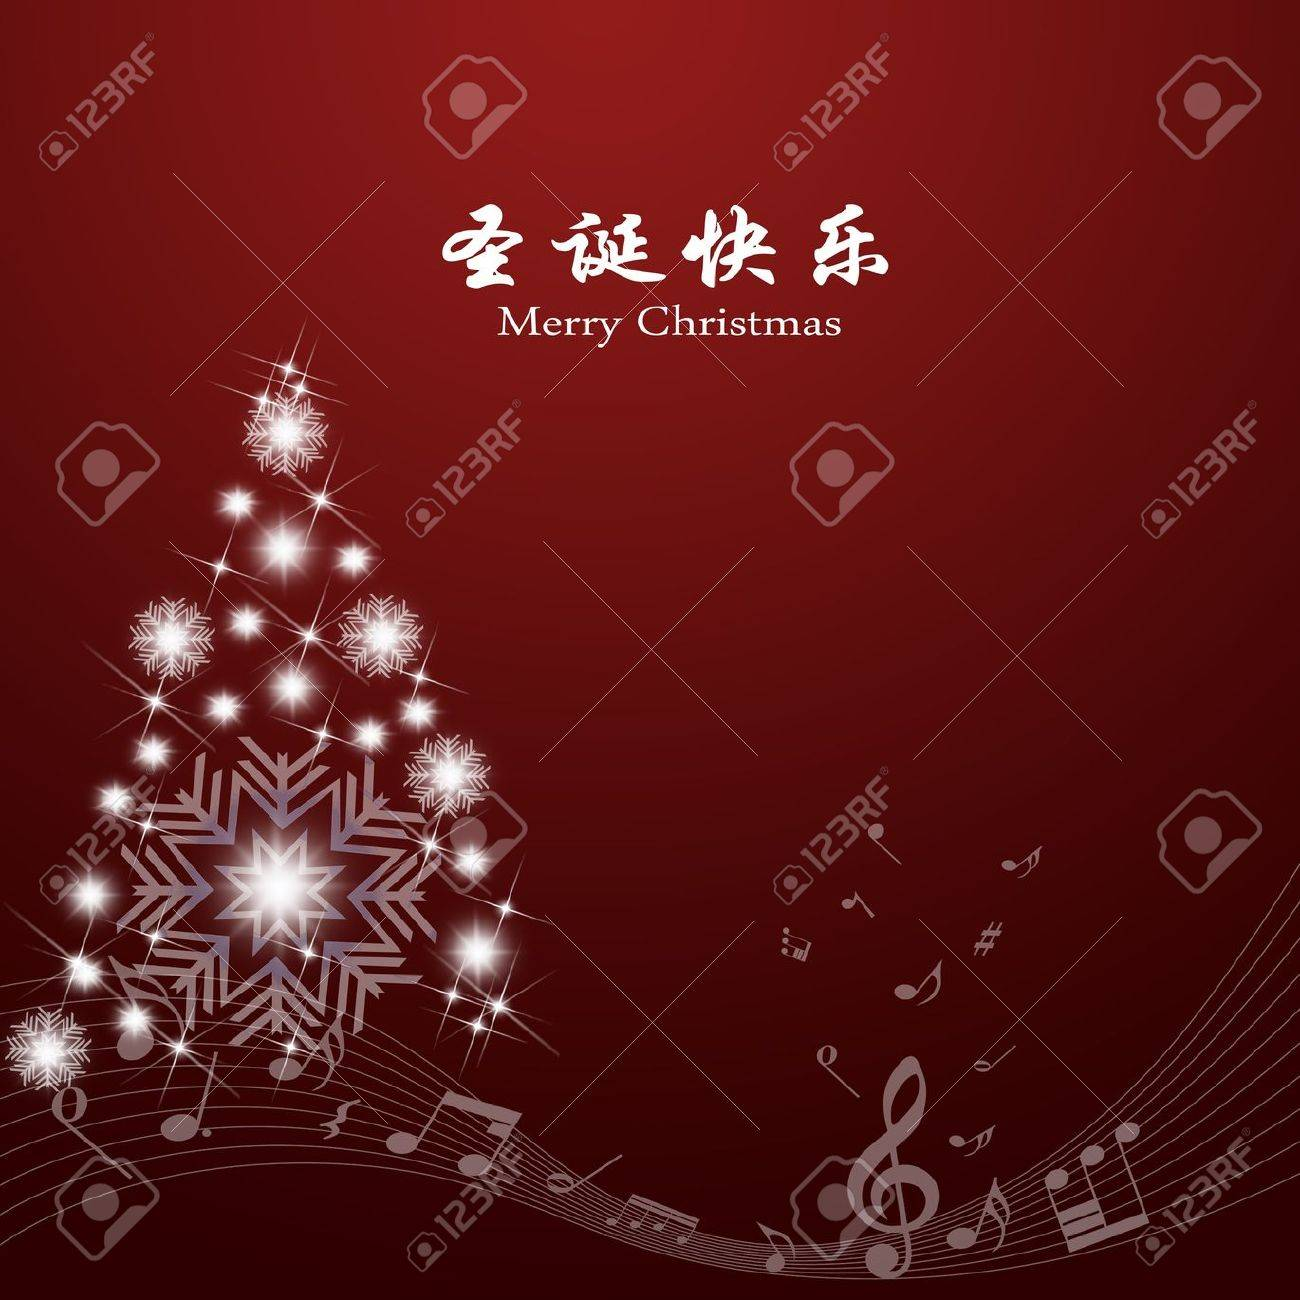 Abstract Background Of Merry Christmas Card. Text In Chinese.. Stock ...